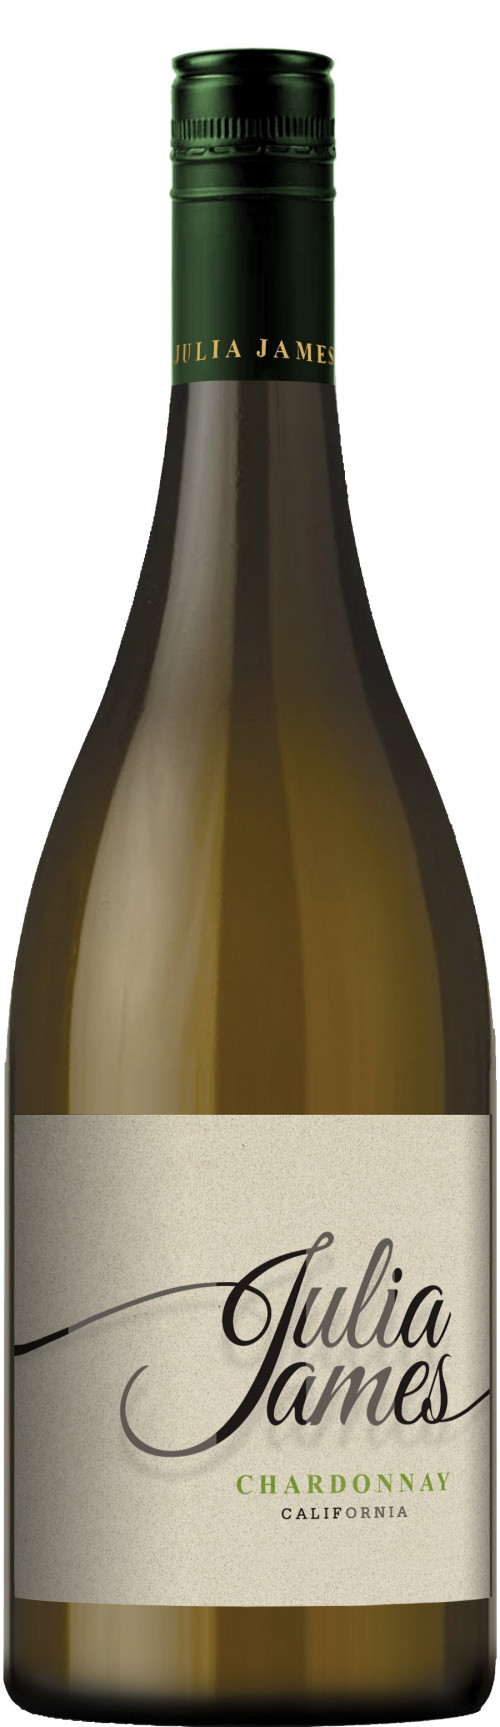 2019 Julia James Chardonnay 750ml